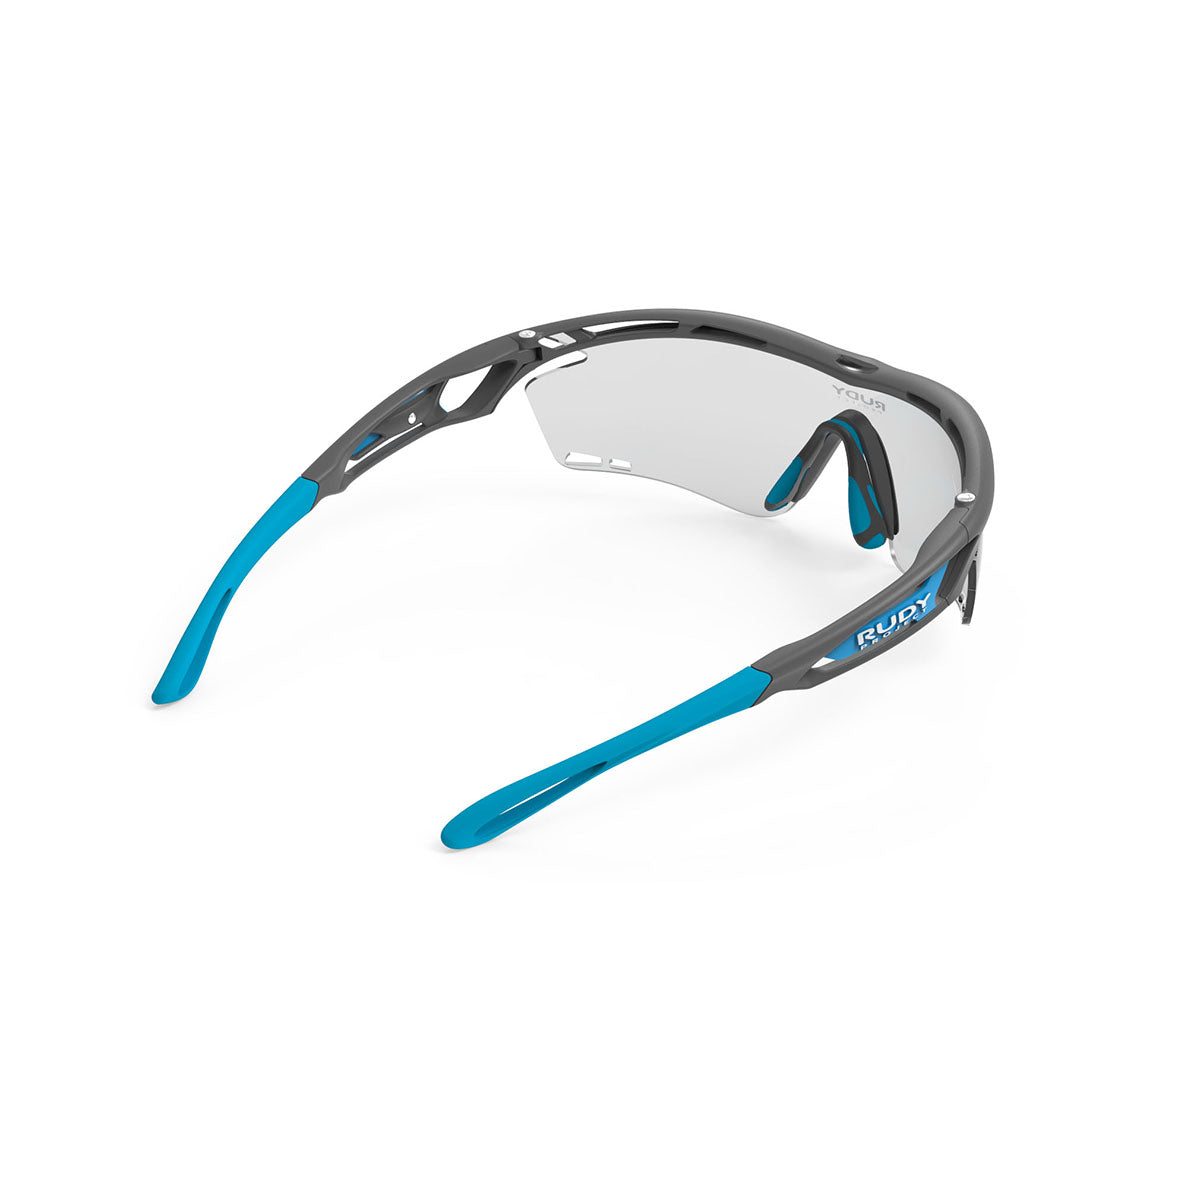 Rudy Project - Tralyx - frame color: Pyombo Matte - lens color: ImpactX-2 Photochromic Clear to Black - photo angle: Top Back Angle Variant Hover Image